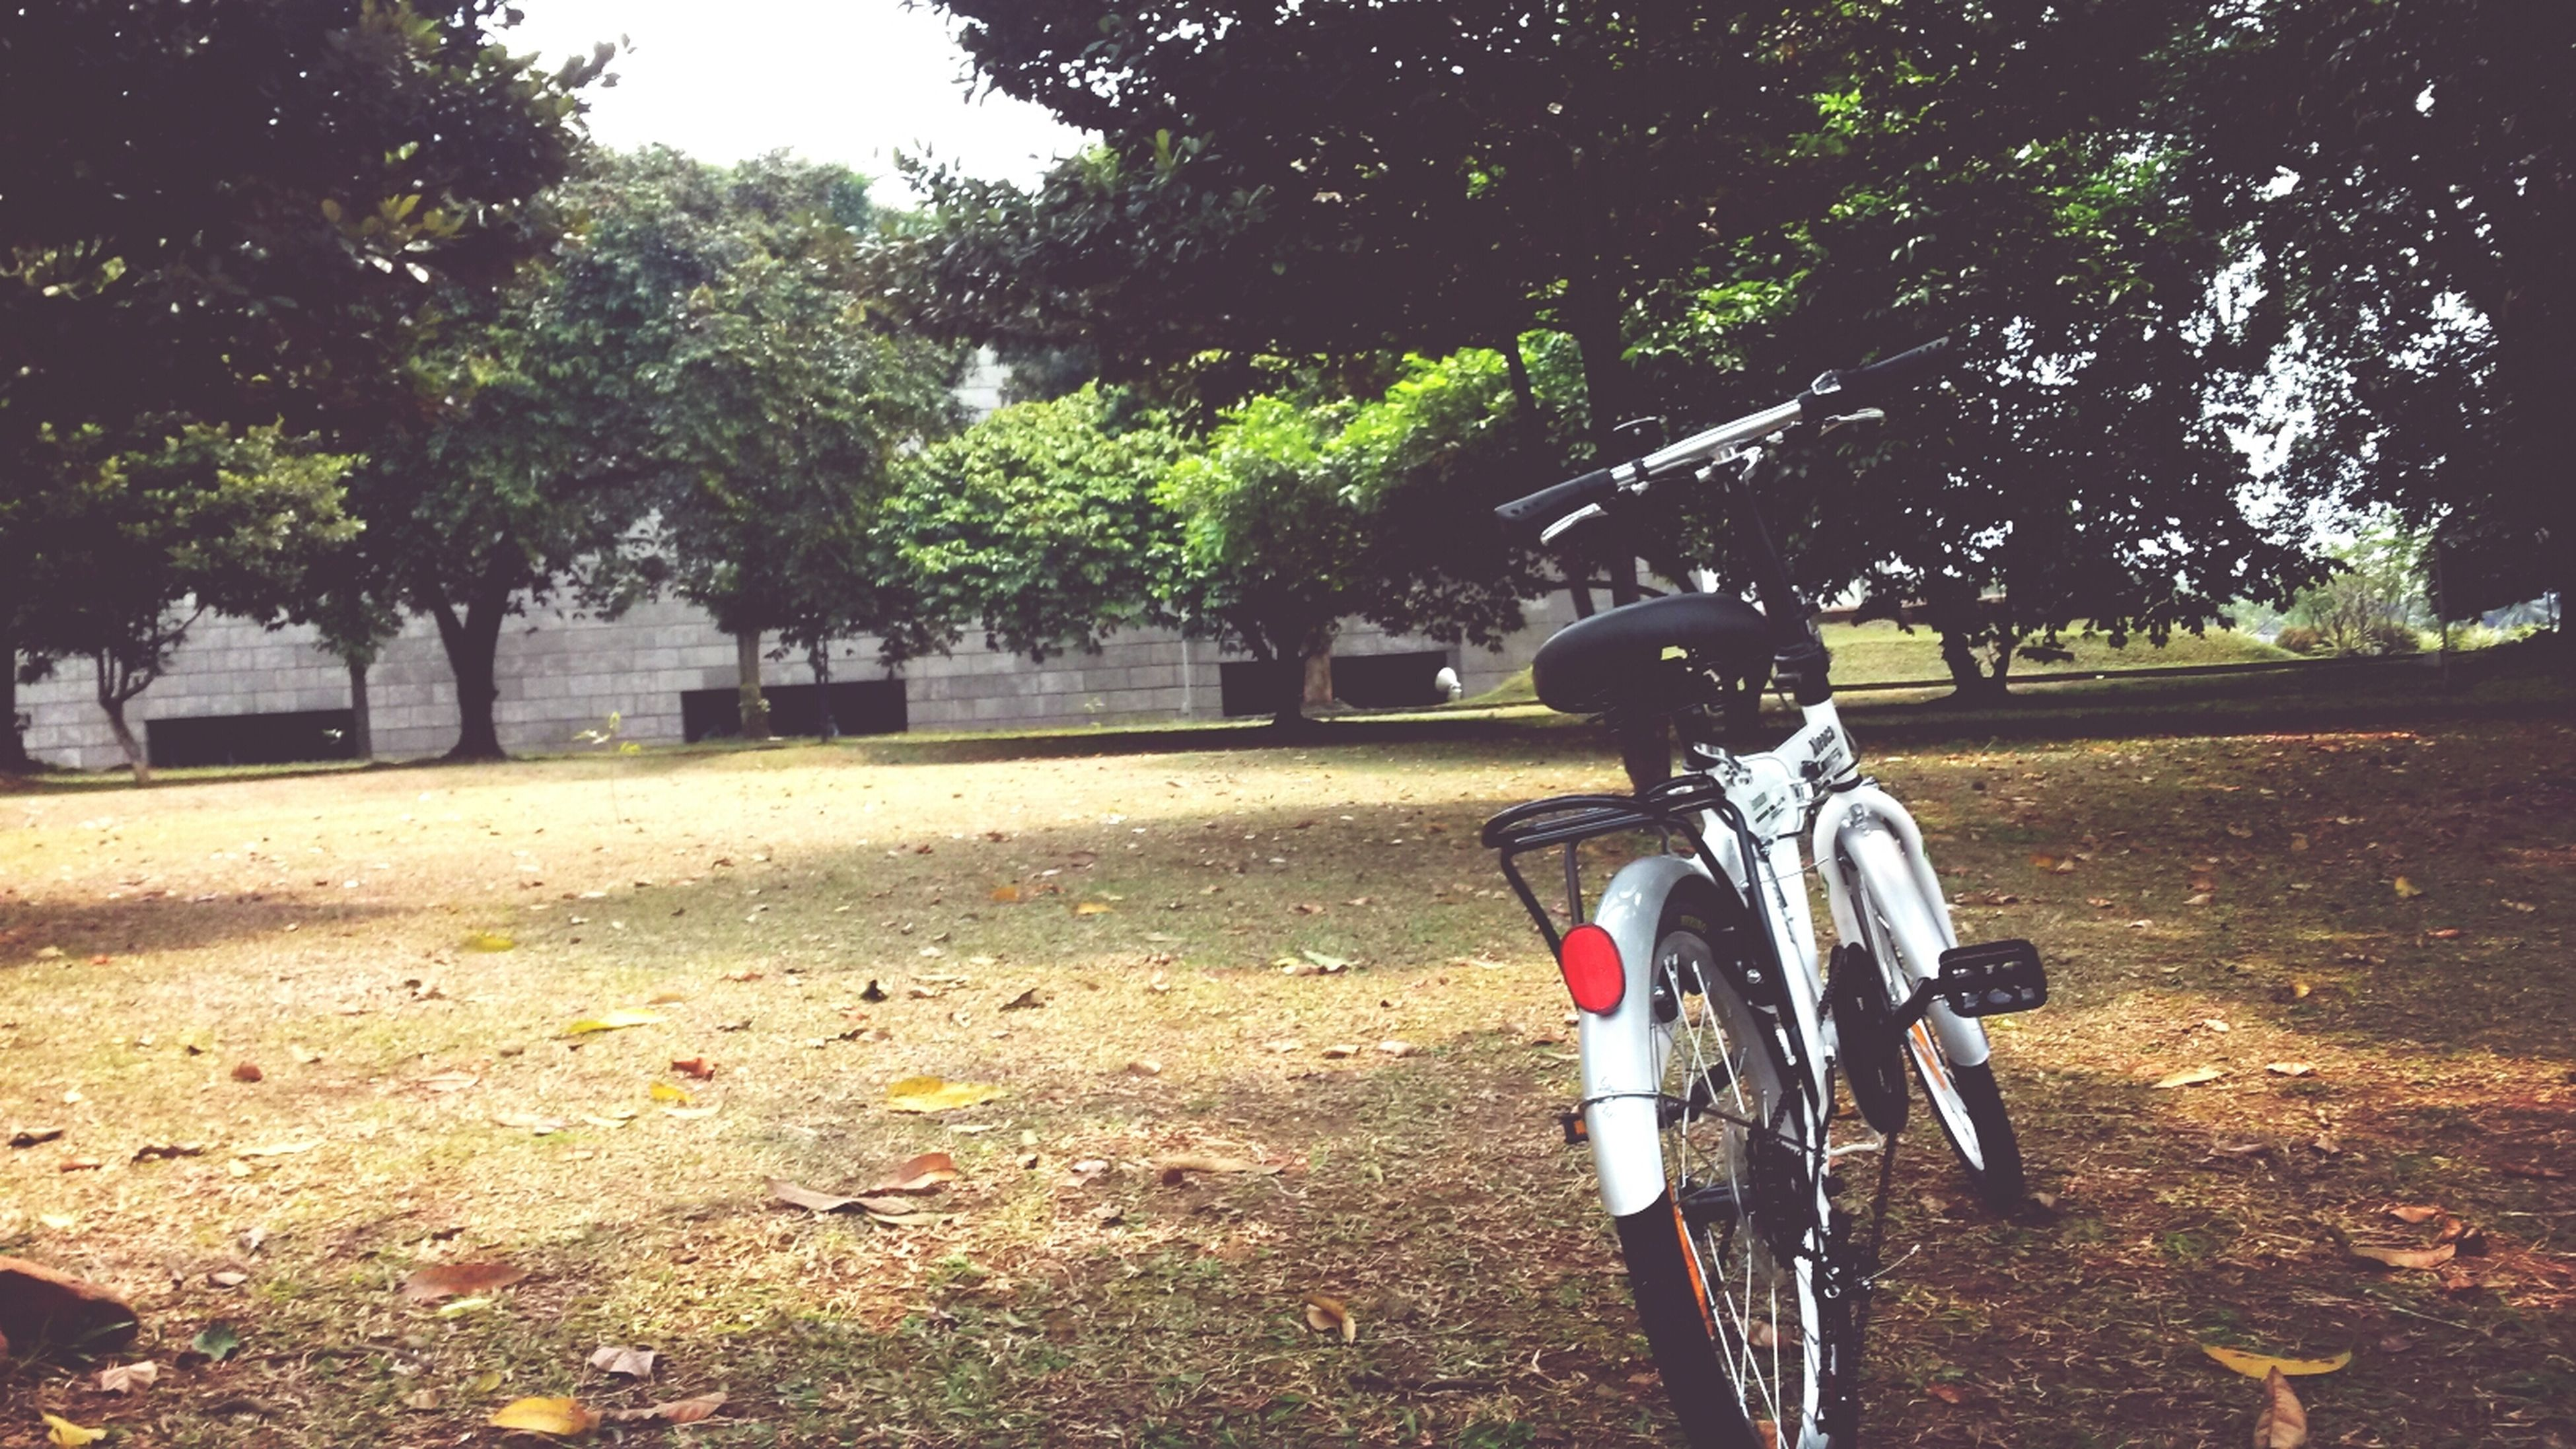 tree, transportation, bicycle, land vehicle, full length, lifestyles, mode of transport, leisure activity, men, sunlight, riding, rear view, road, street, casual clothing, shadow, day, childhood